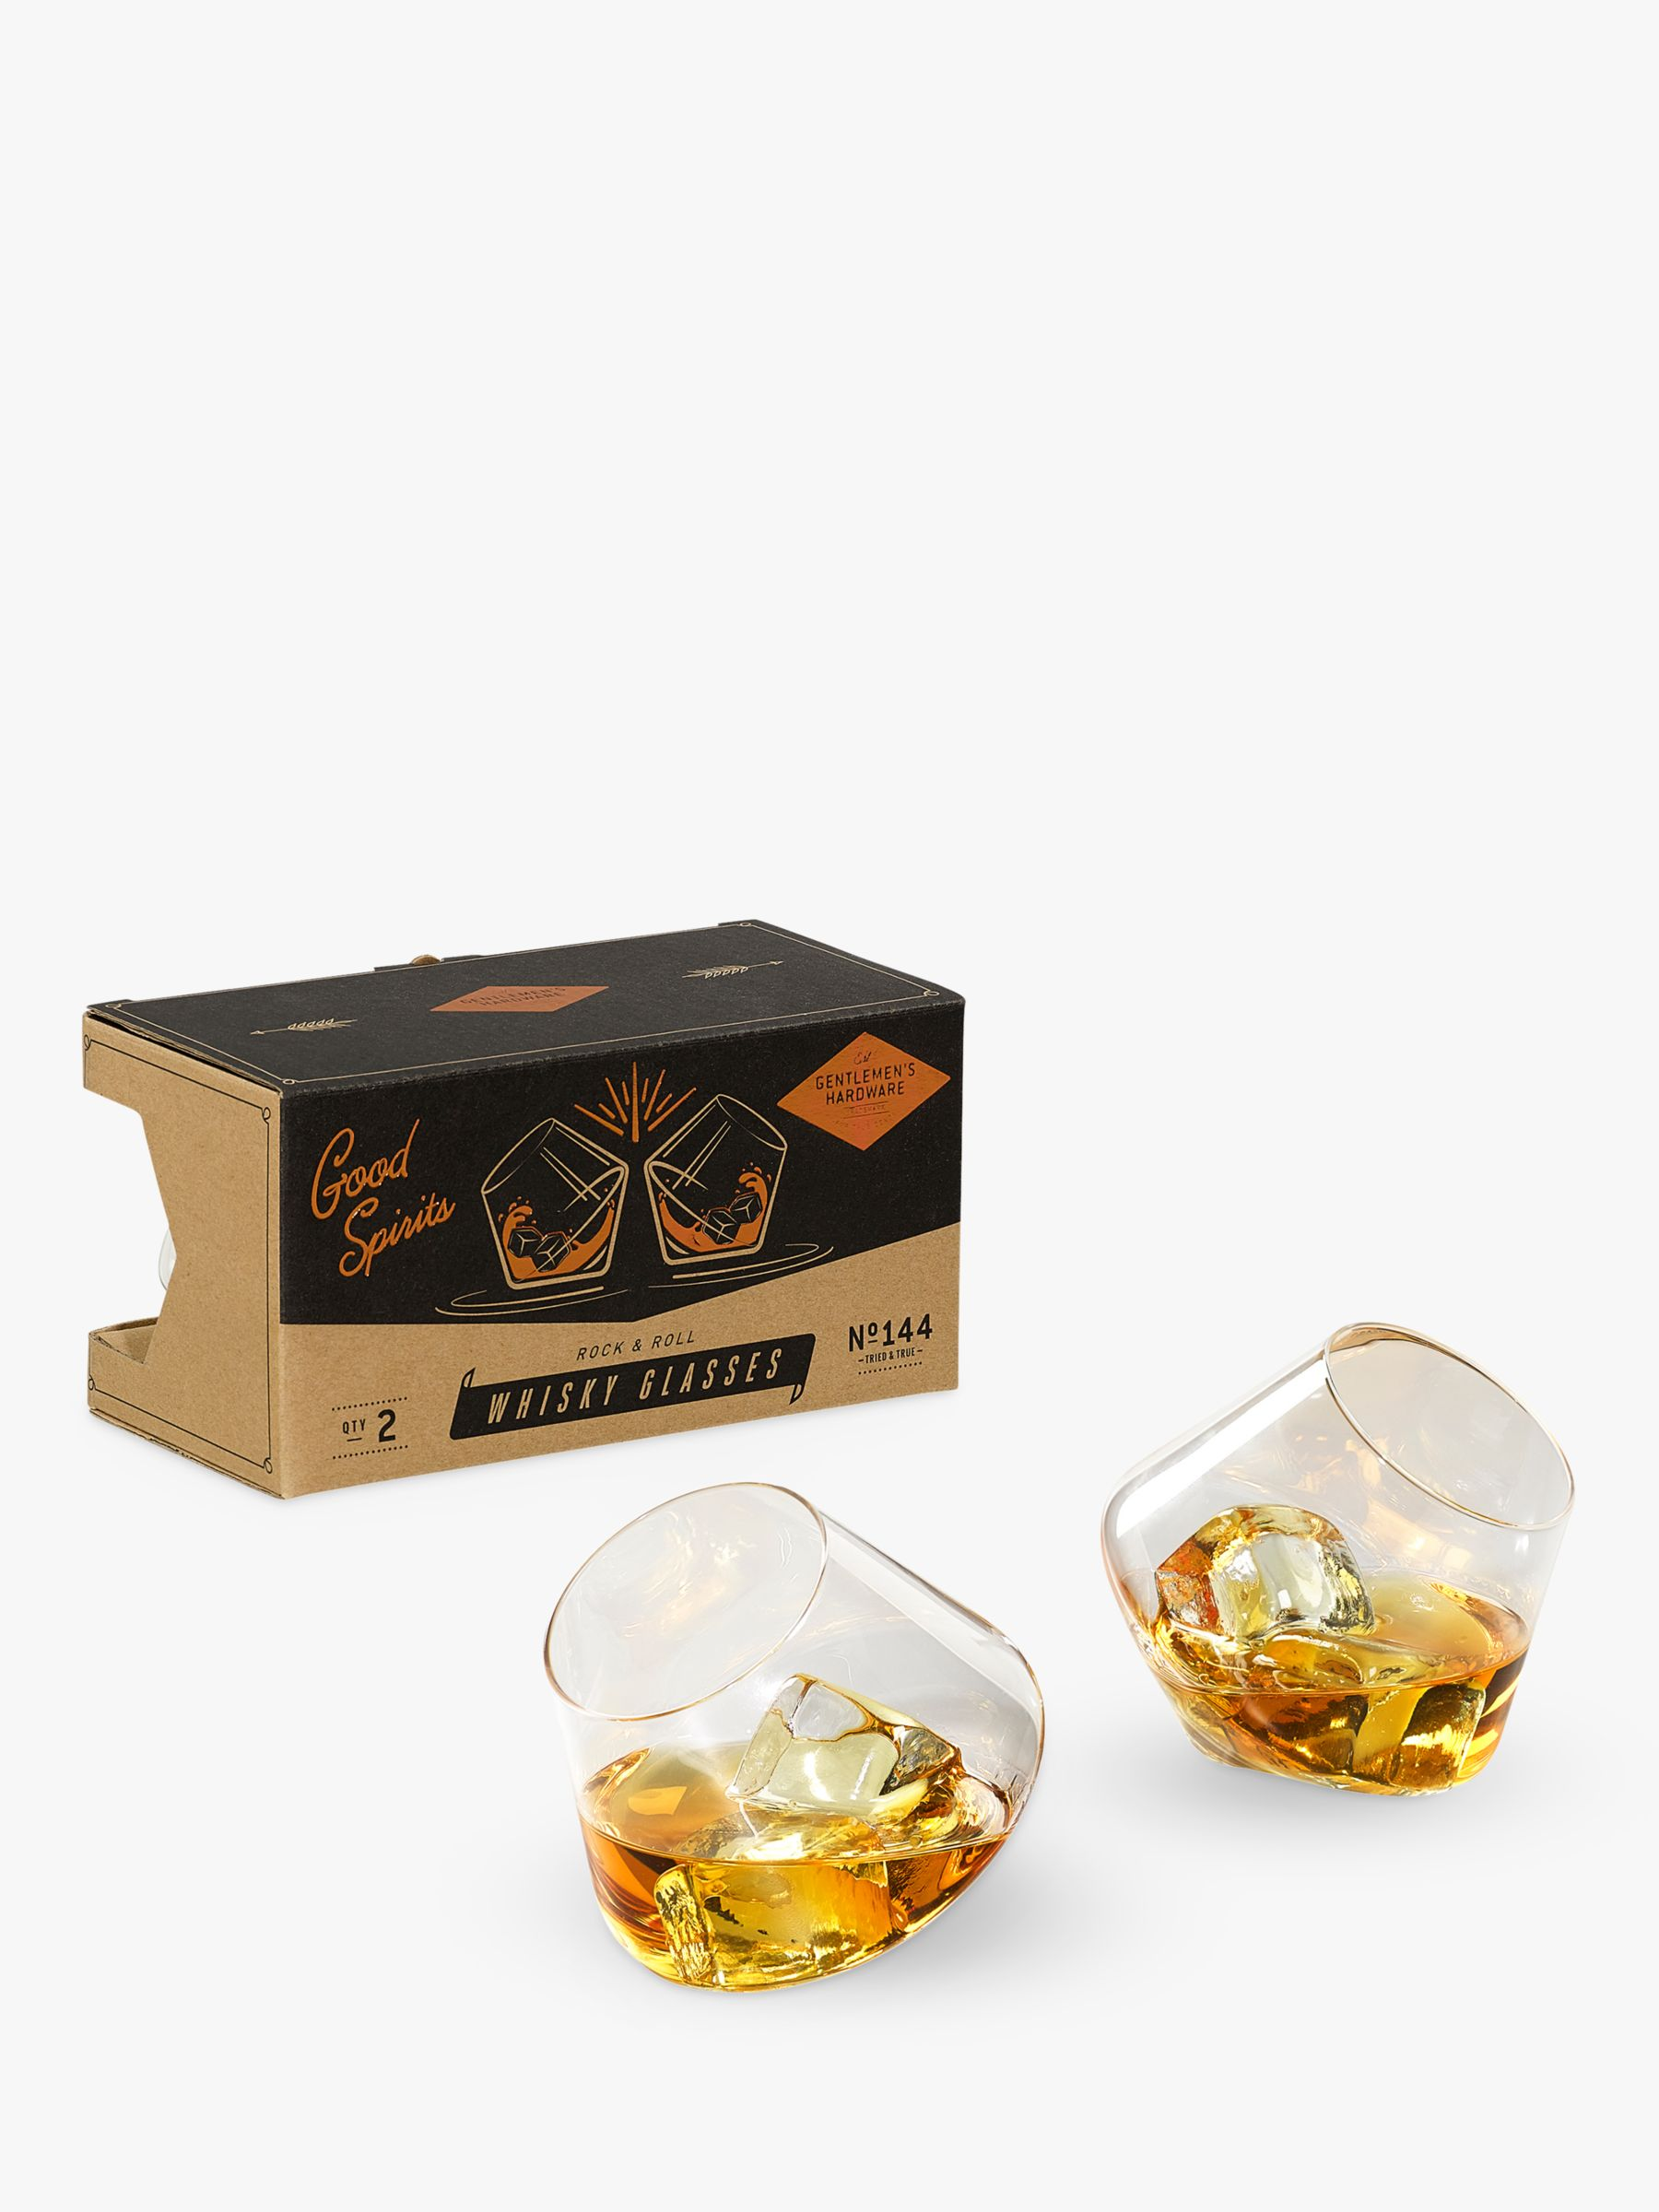 Gentlemen's Hardware Gentlemen's Hardware Rocking Whiskey Glasses, Set of 2